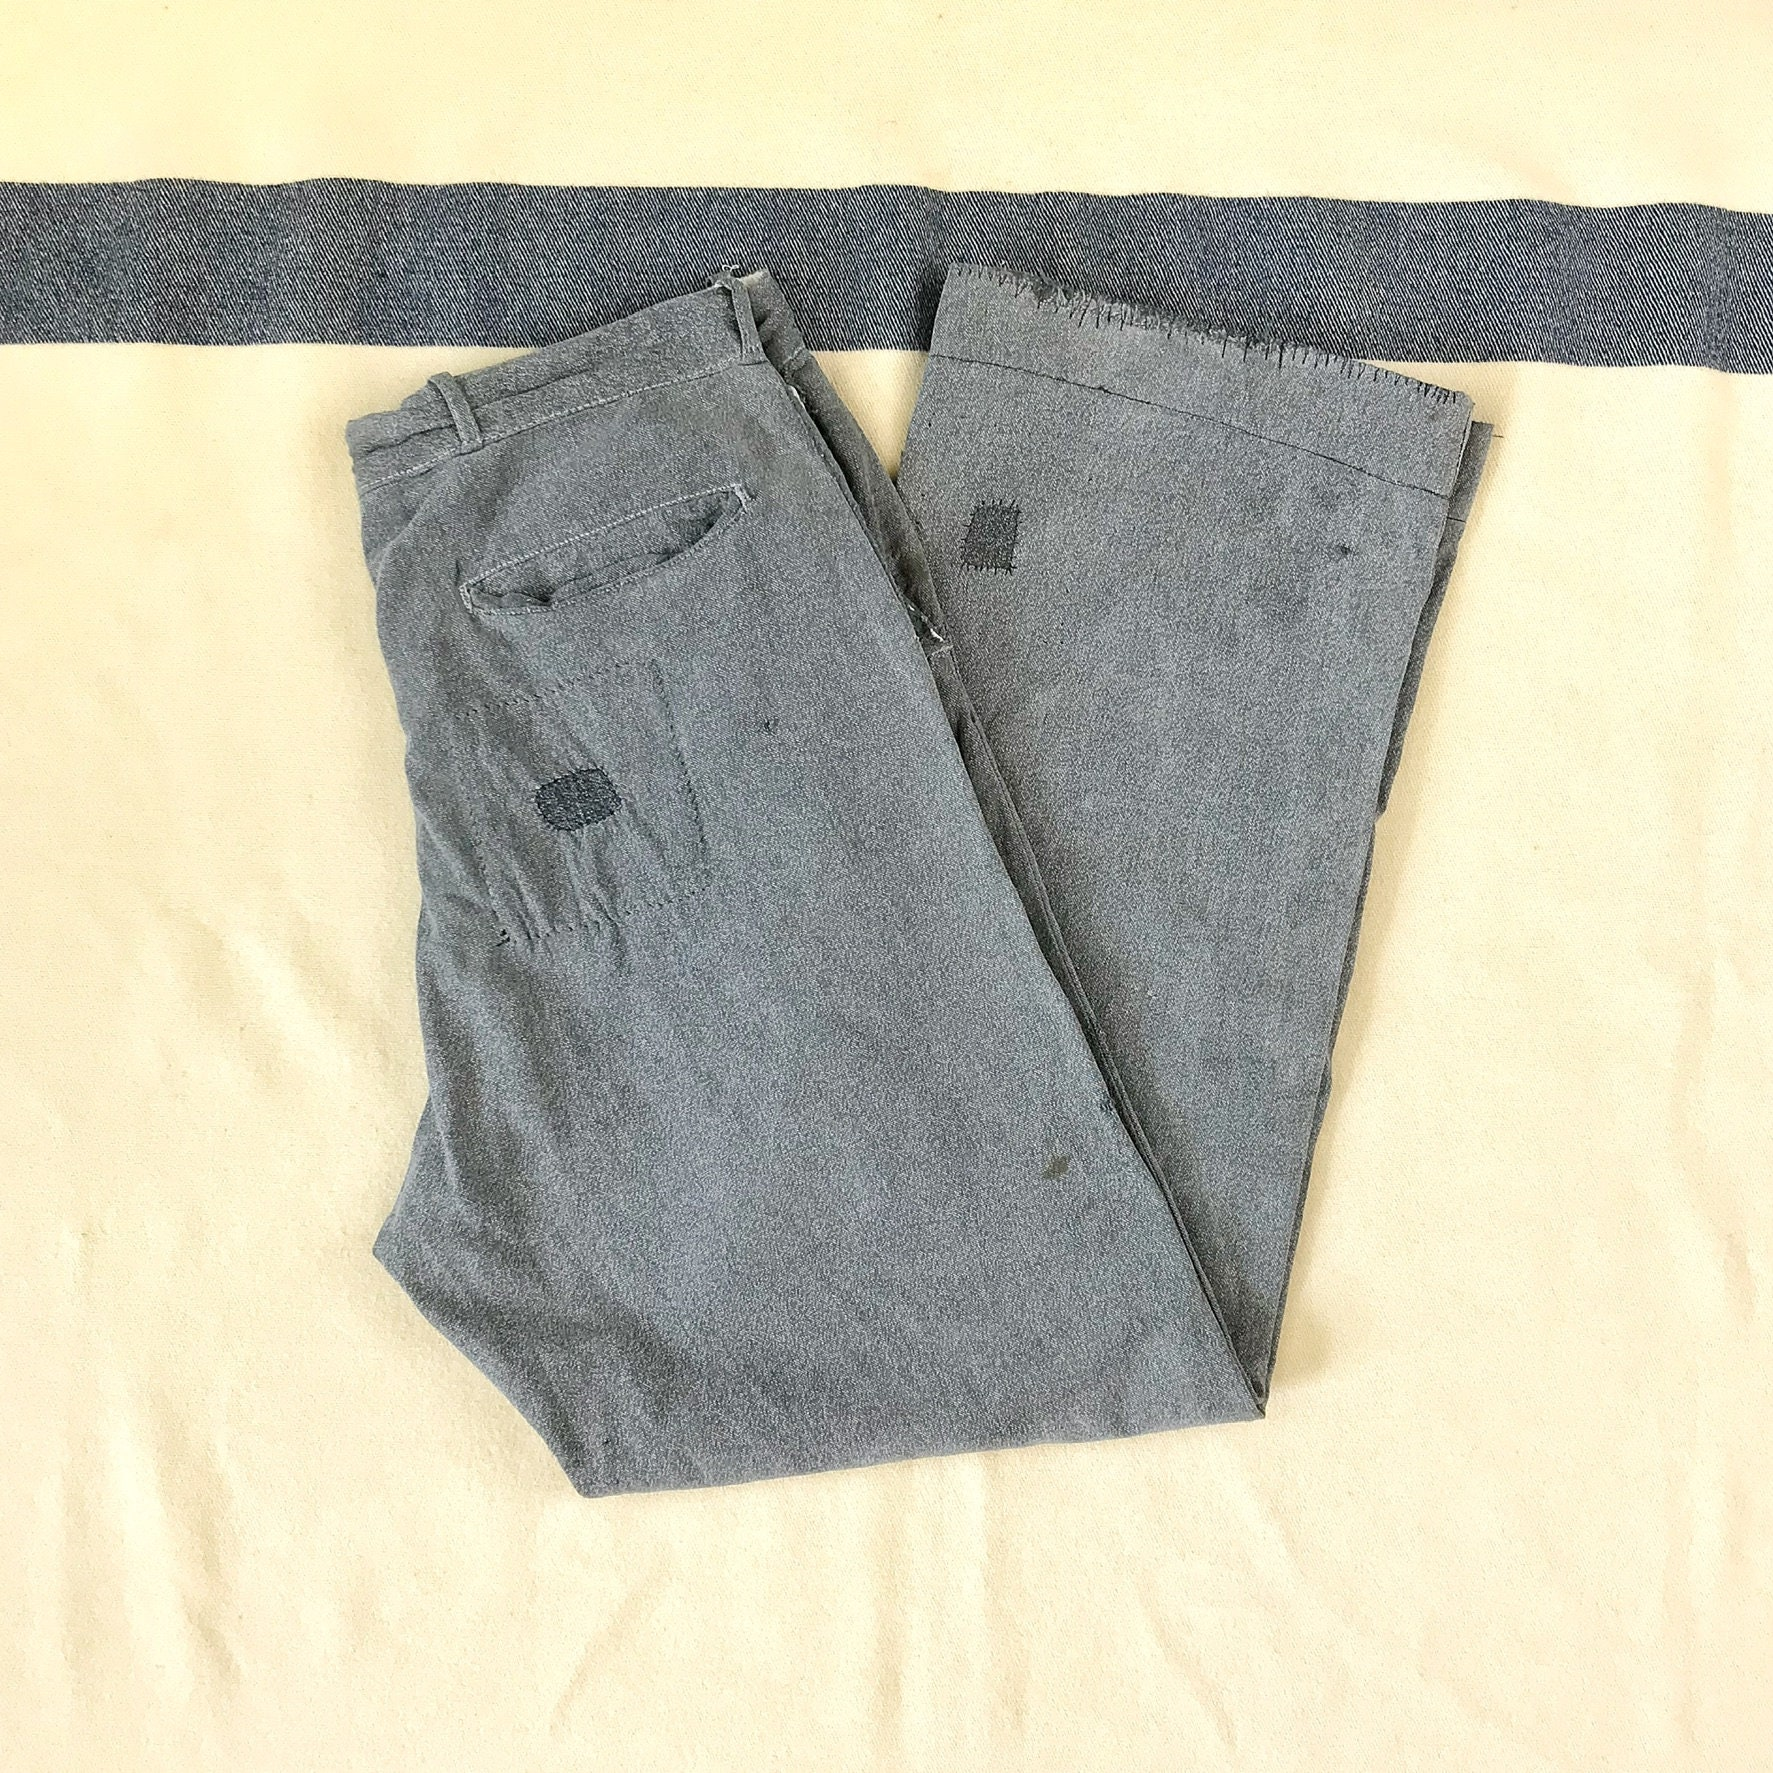 New 1930s Mens Fashion Ties Size 33x29 Vintage Mens 1930S 1940S Salt  Pepper Covert Cloth Cotton Twill Distressed Gray Work Pants With Visible Mending $0.00 AT vintagedancer.com